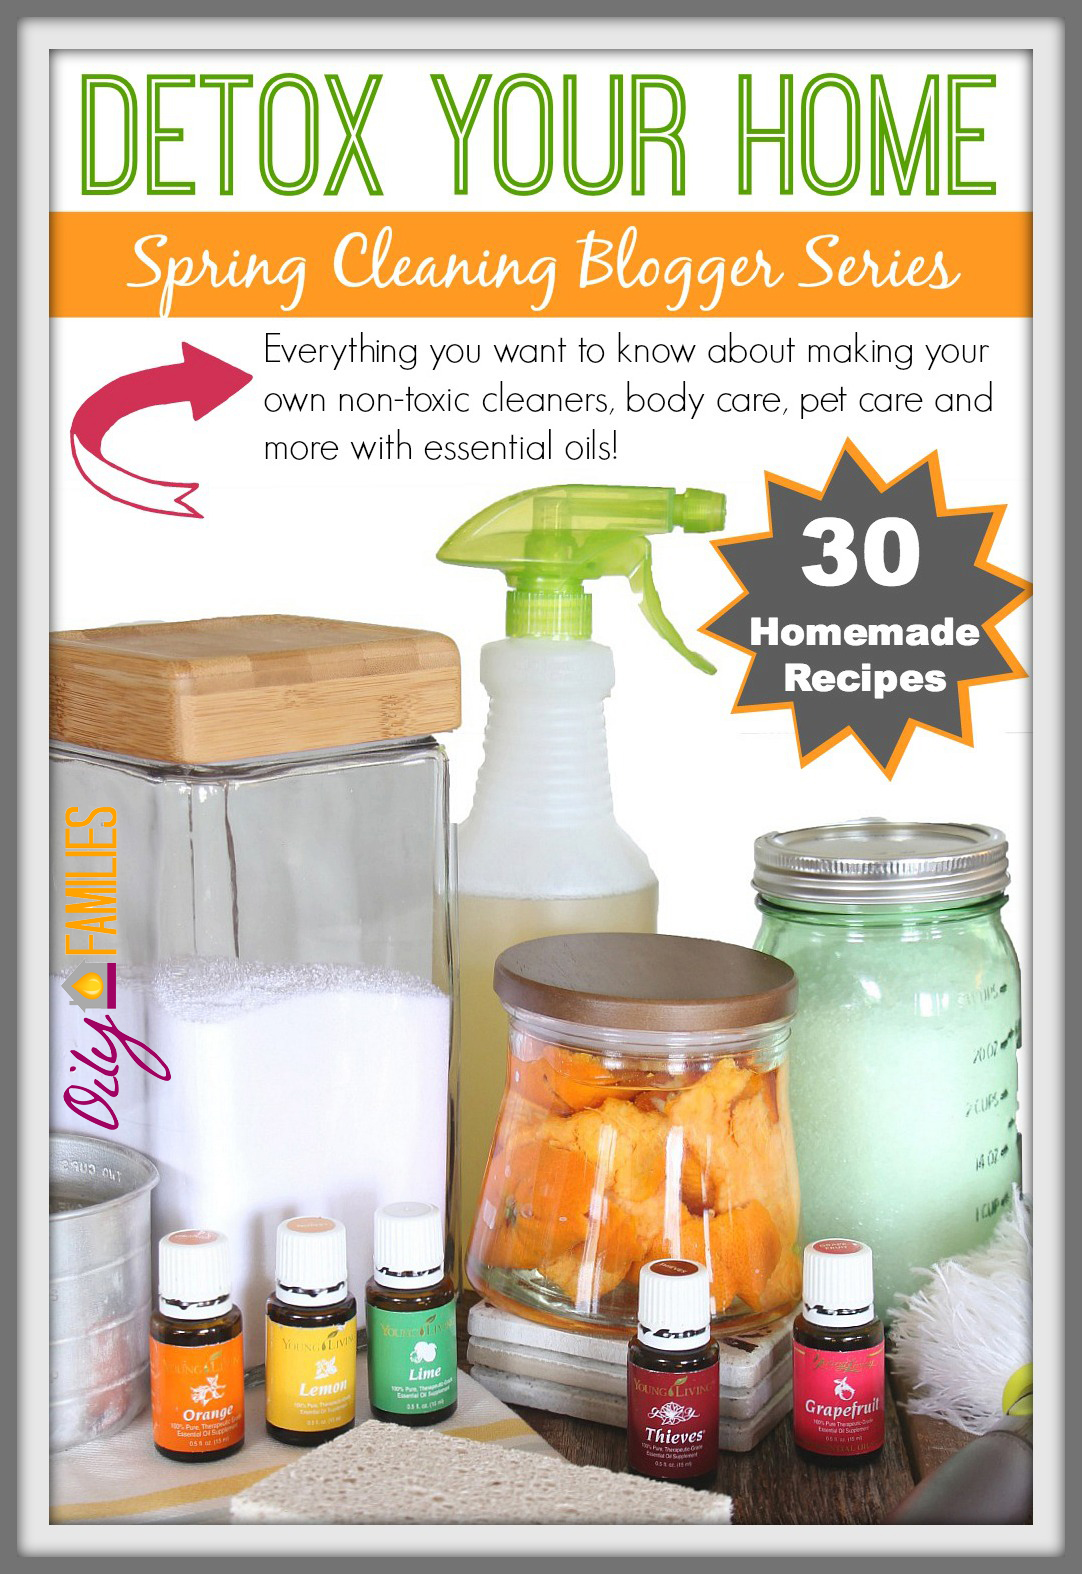 Detox Your Home | Spring Cleaning Blogger Series